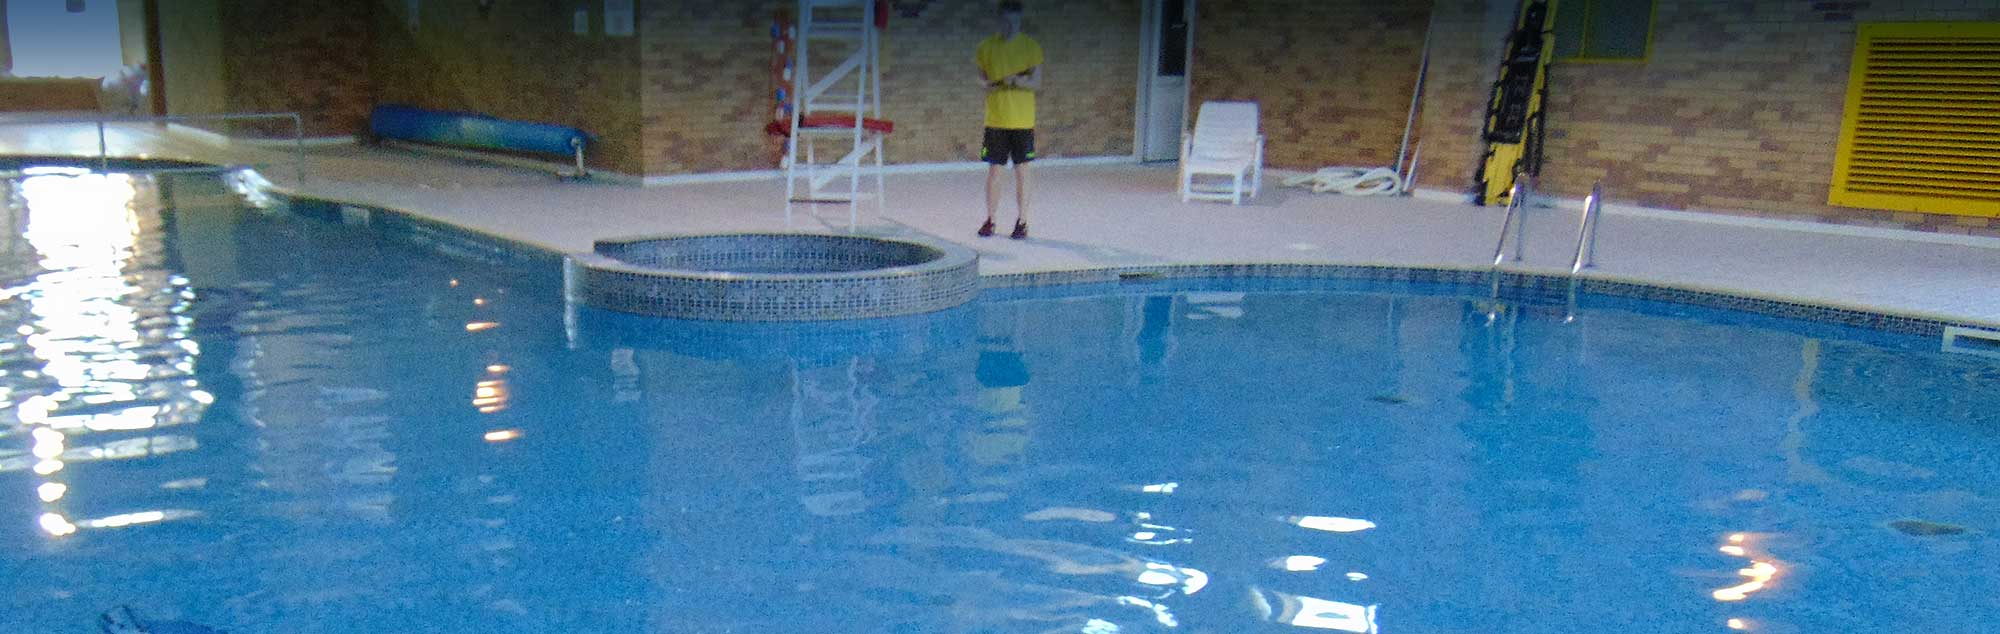 Holidays in Yorkshire with Indoor swimming pools